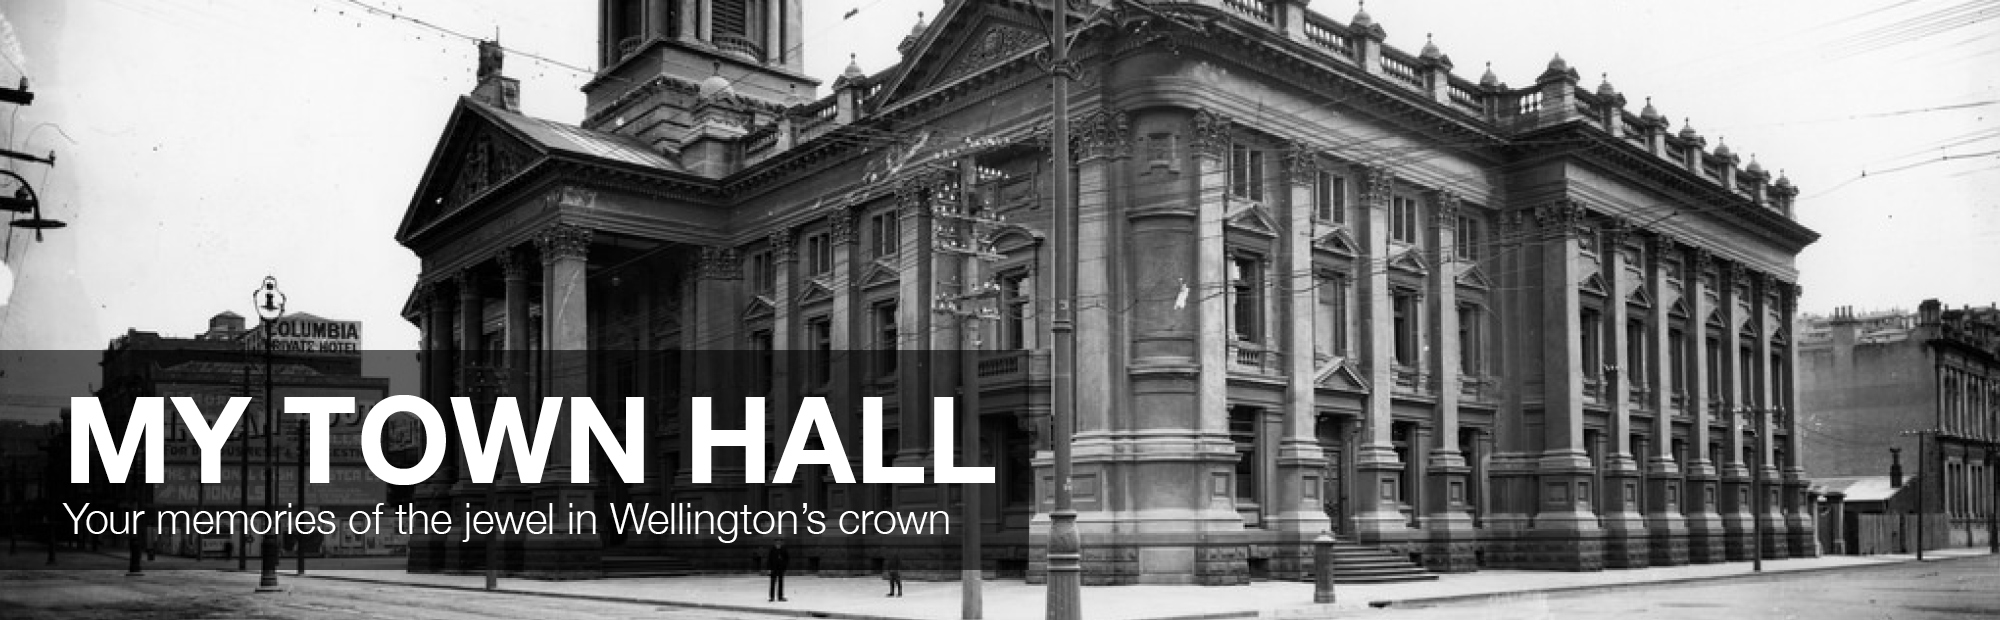 My Town Hall - Your memories of the jewel in Wellington's crown